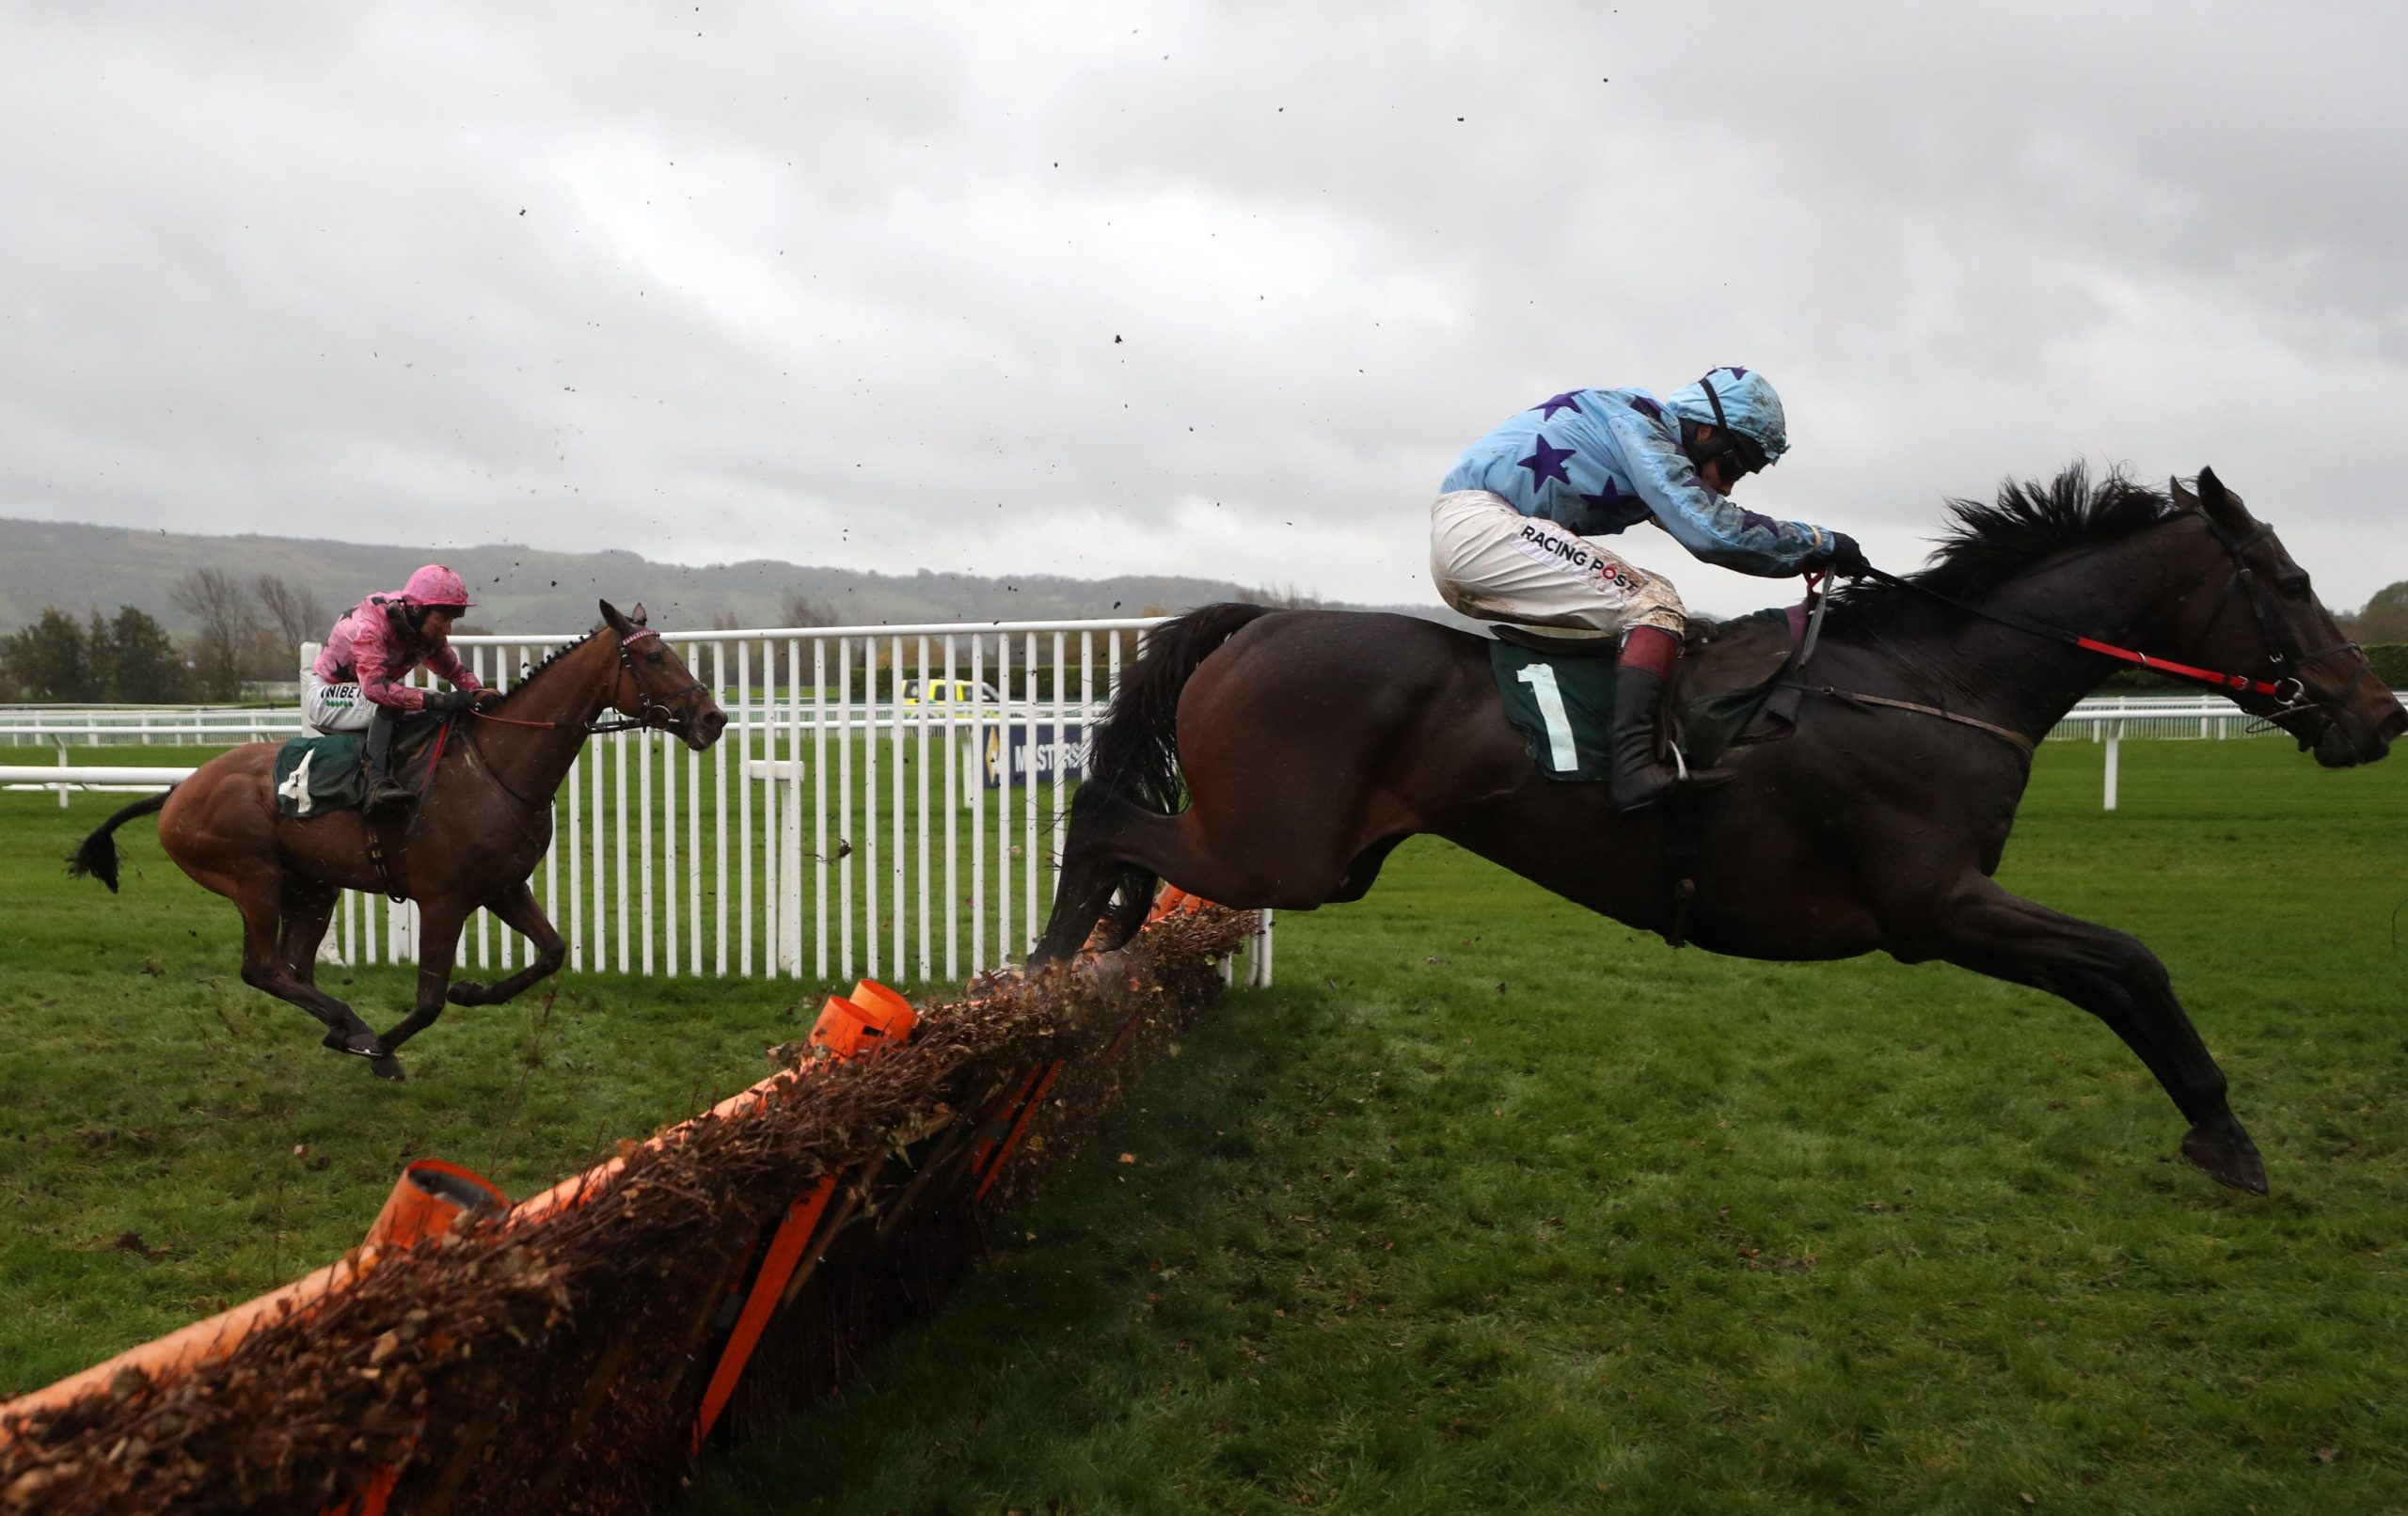 2D7NNA4 Streets Of Doyen ridden by Richard Johnson clears a fence before going on to win the Lara Telfer Reined In For Racing Welfare Novices' Hurdle at Cheltenham Racecourse.